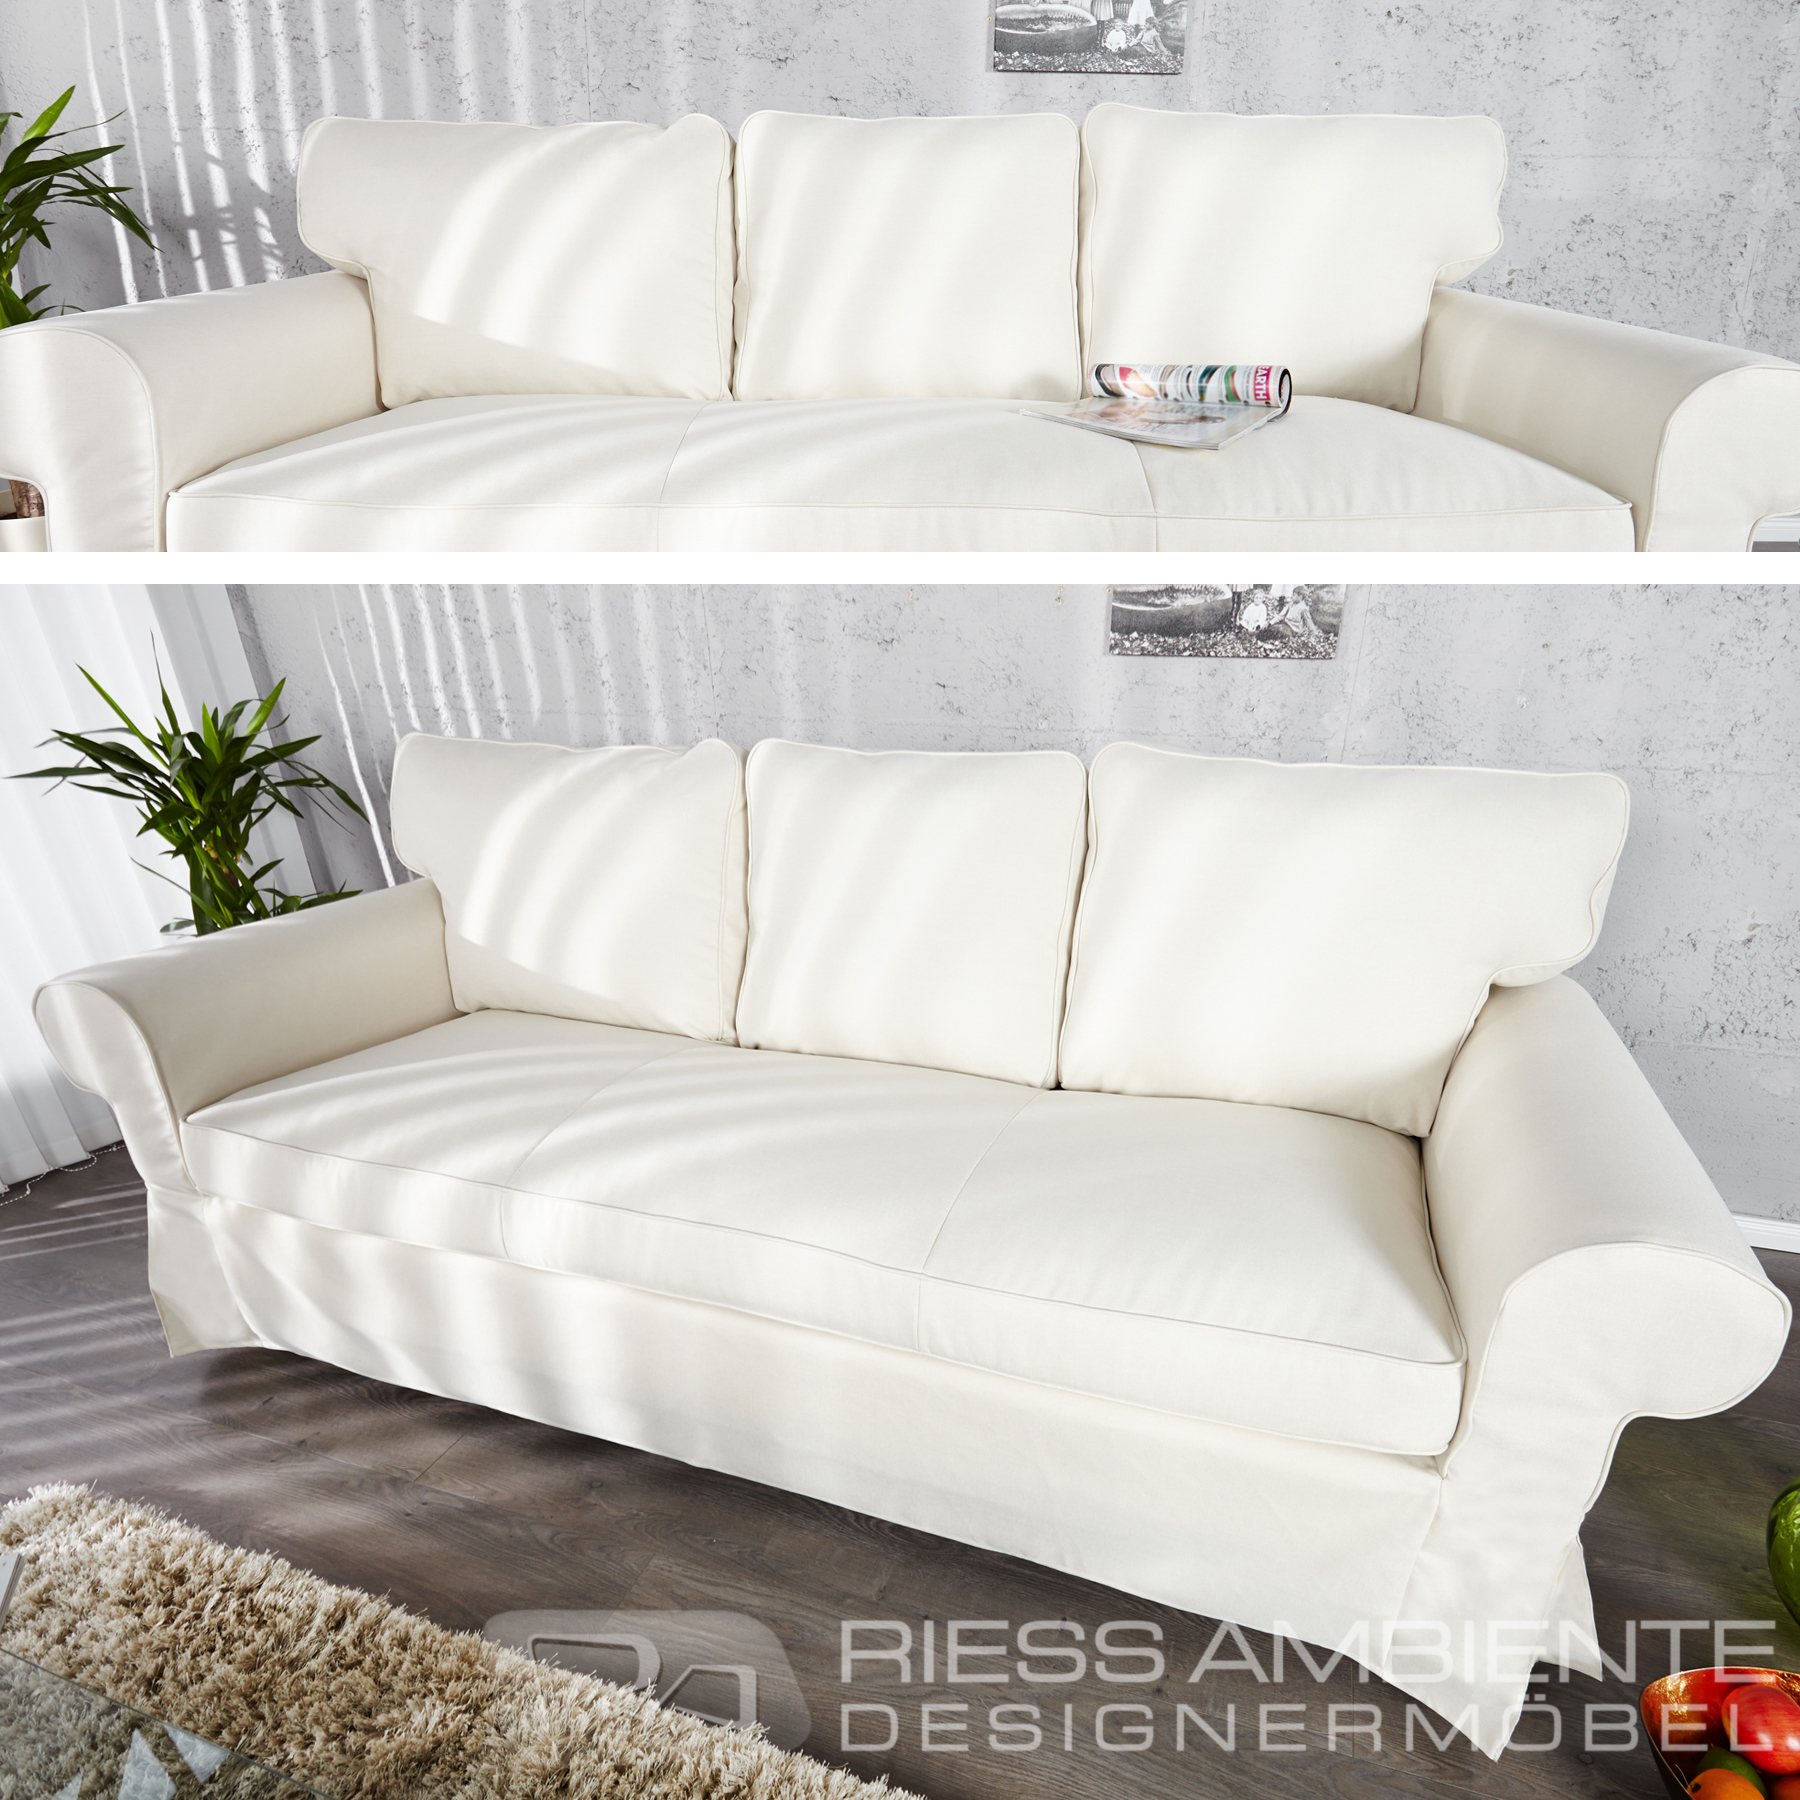 edles 3er hussensofa sylt beige couch design sofa wohnzimmer polstersofa sofas ebay. Black Bedroom Furniture Sets. Home Design Ideas